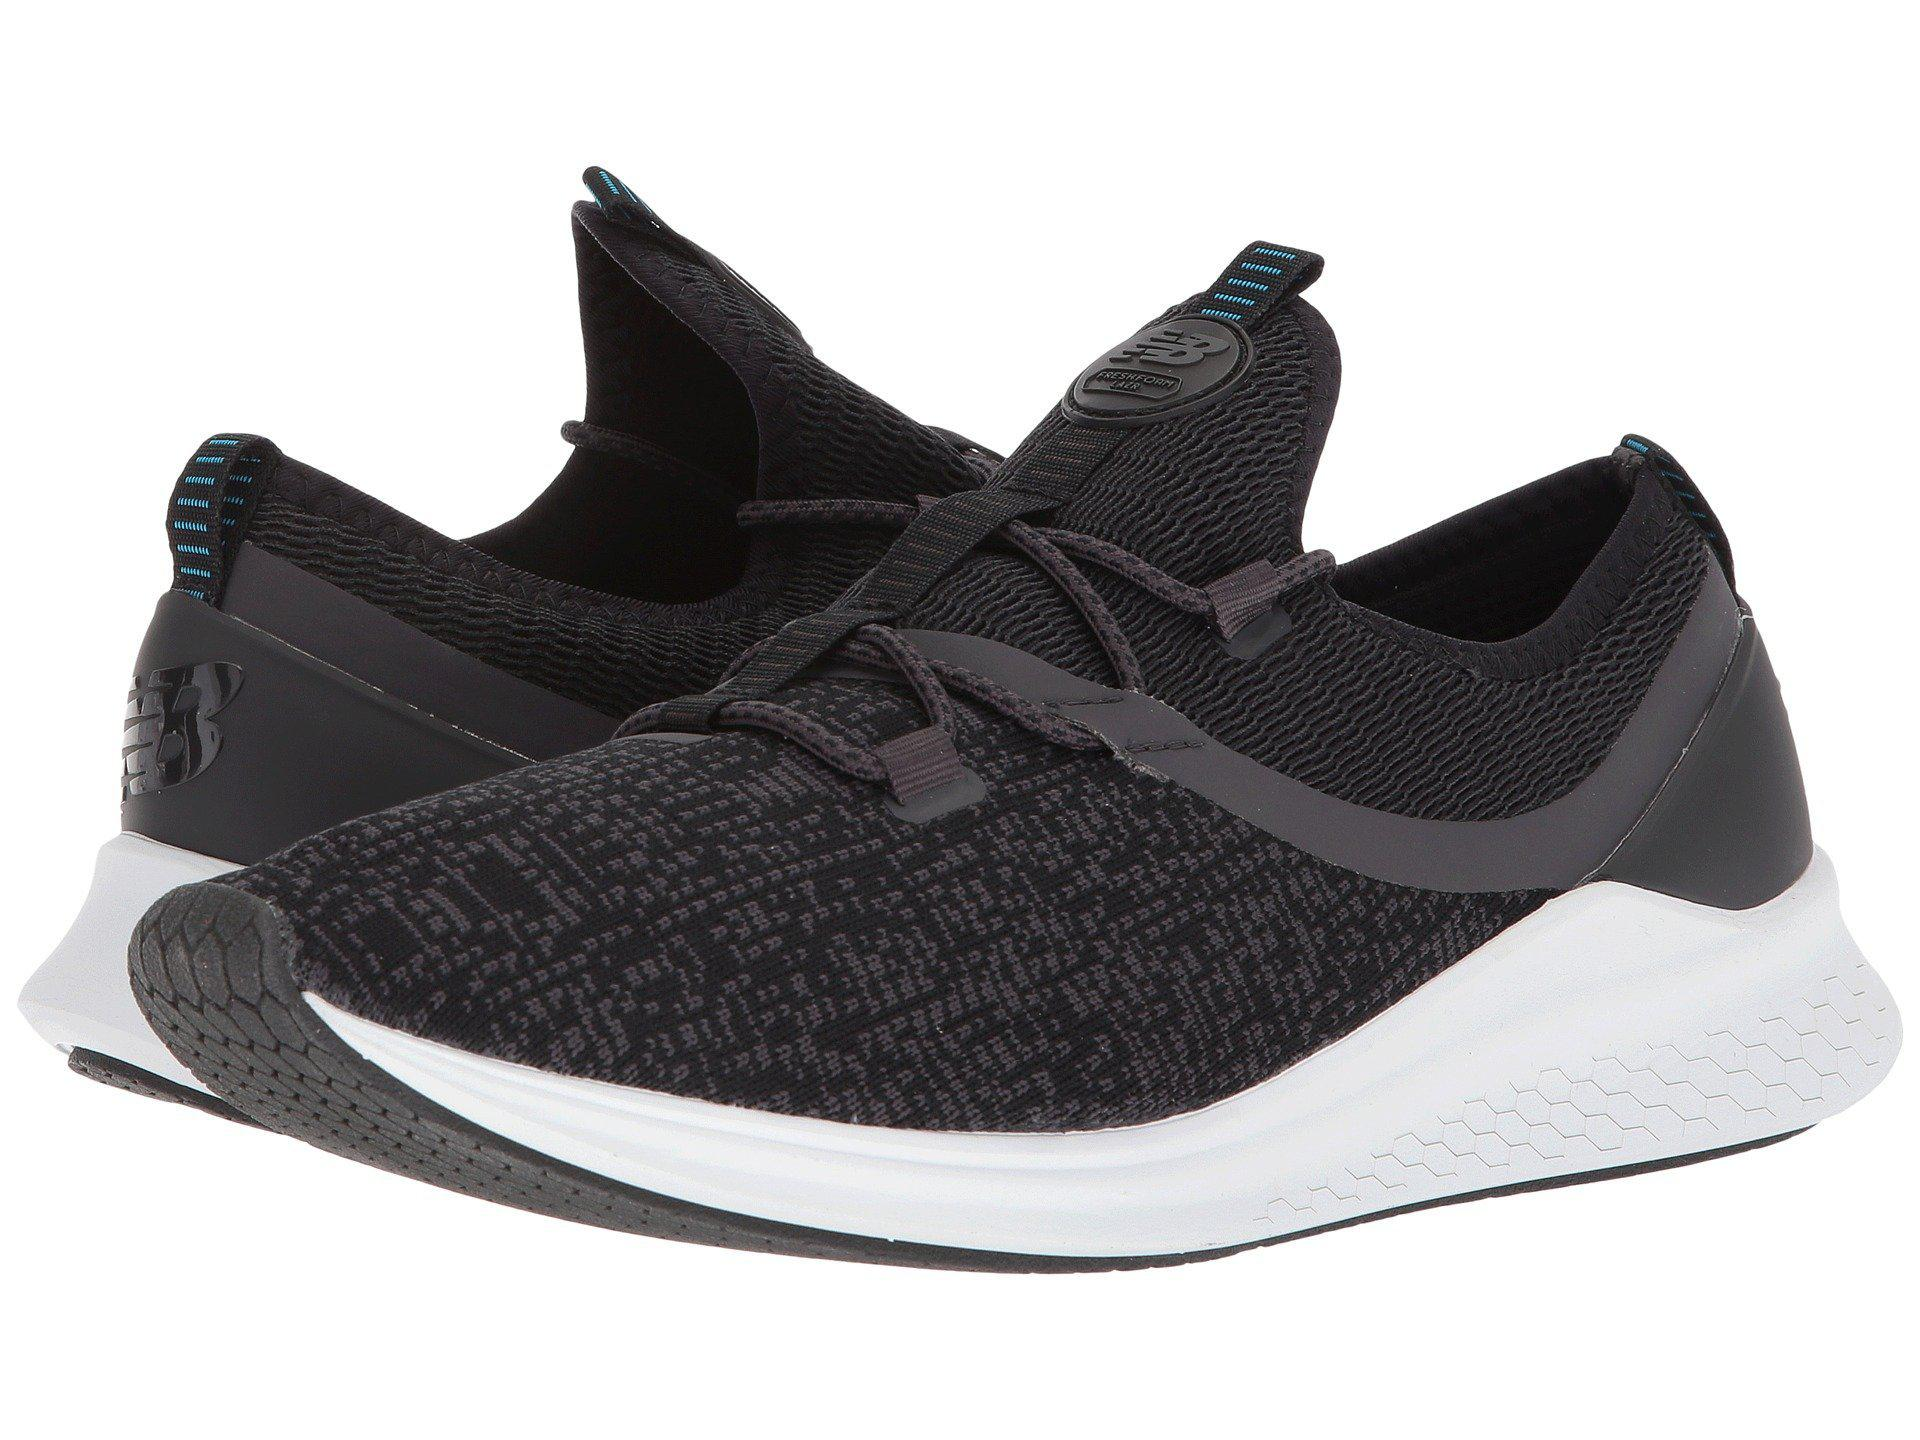 FRESH FOAM LAZR SPORT - FOOTWEAR - Low-tops & sneakers New Balance Kk6pahl